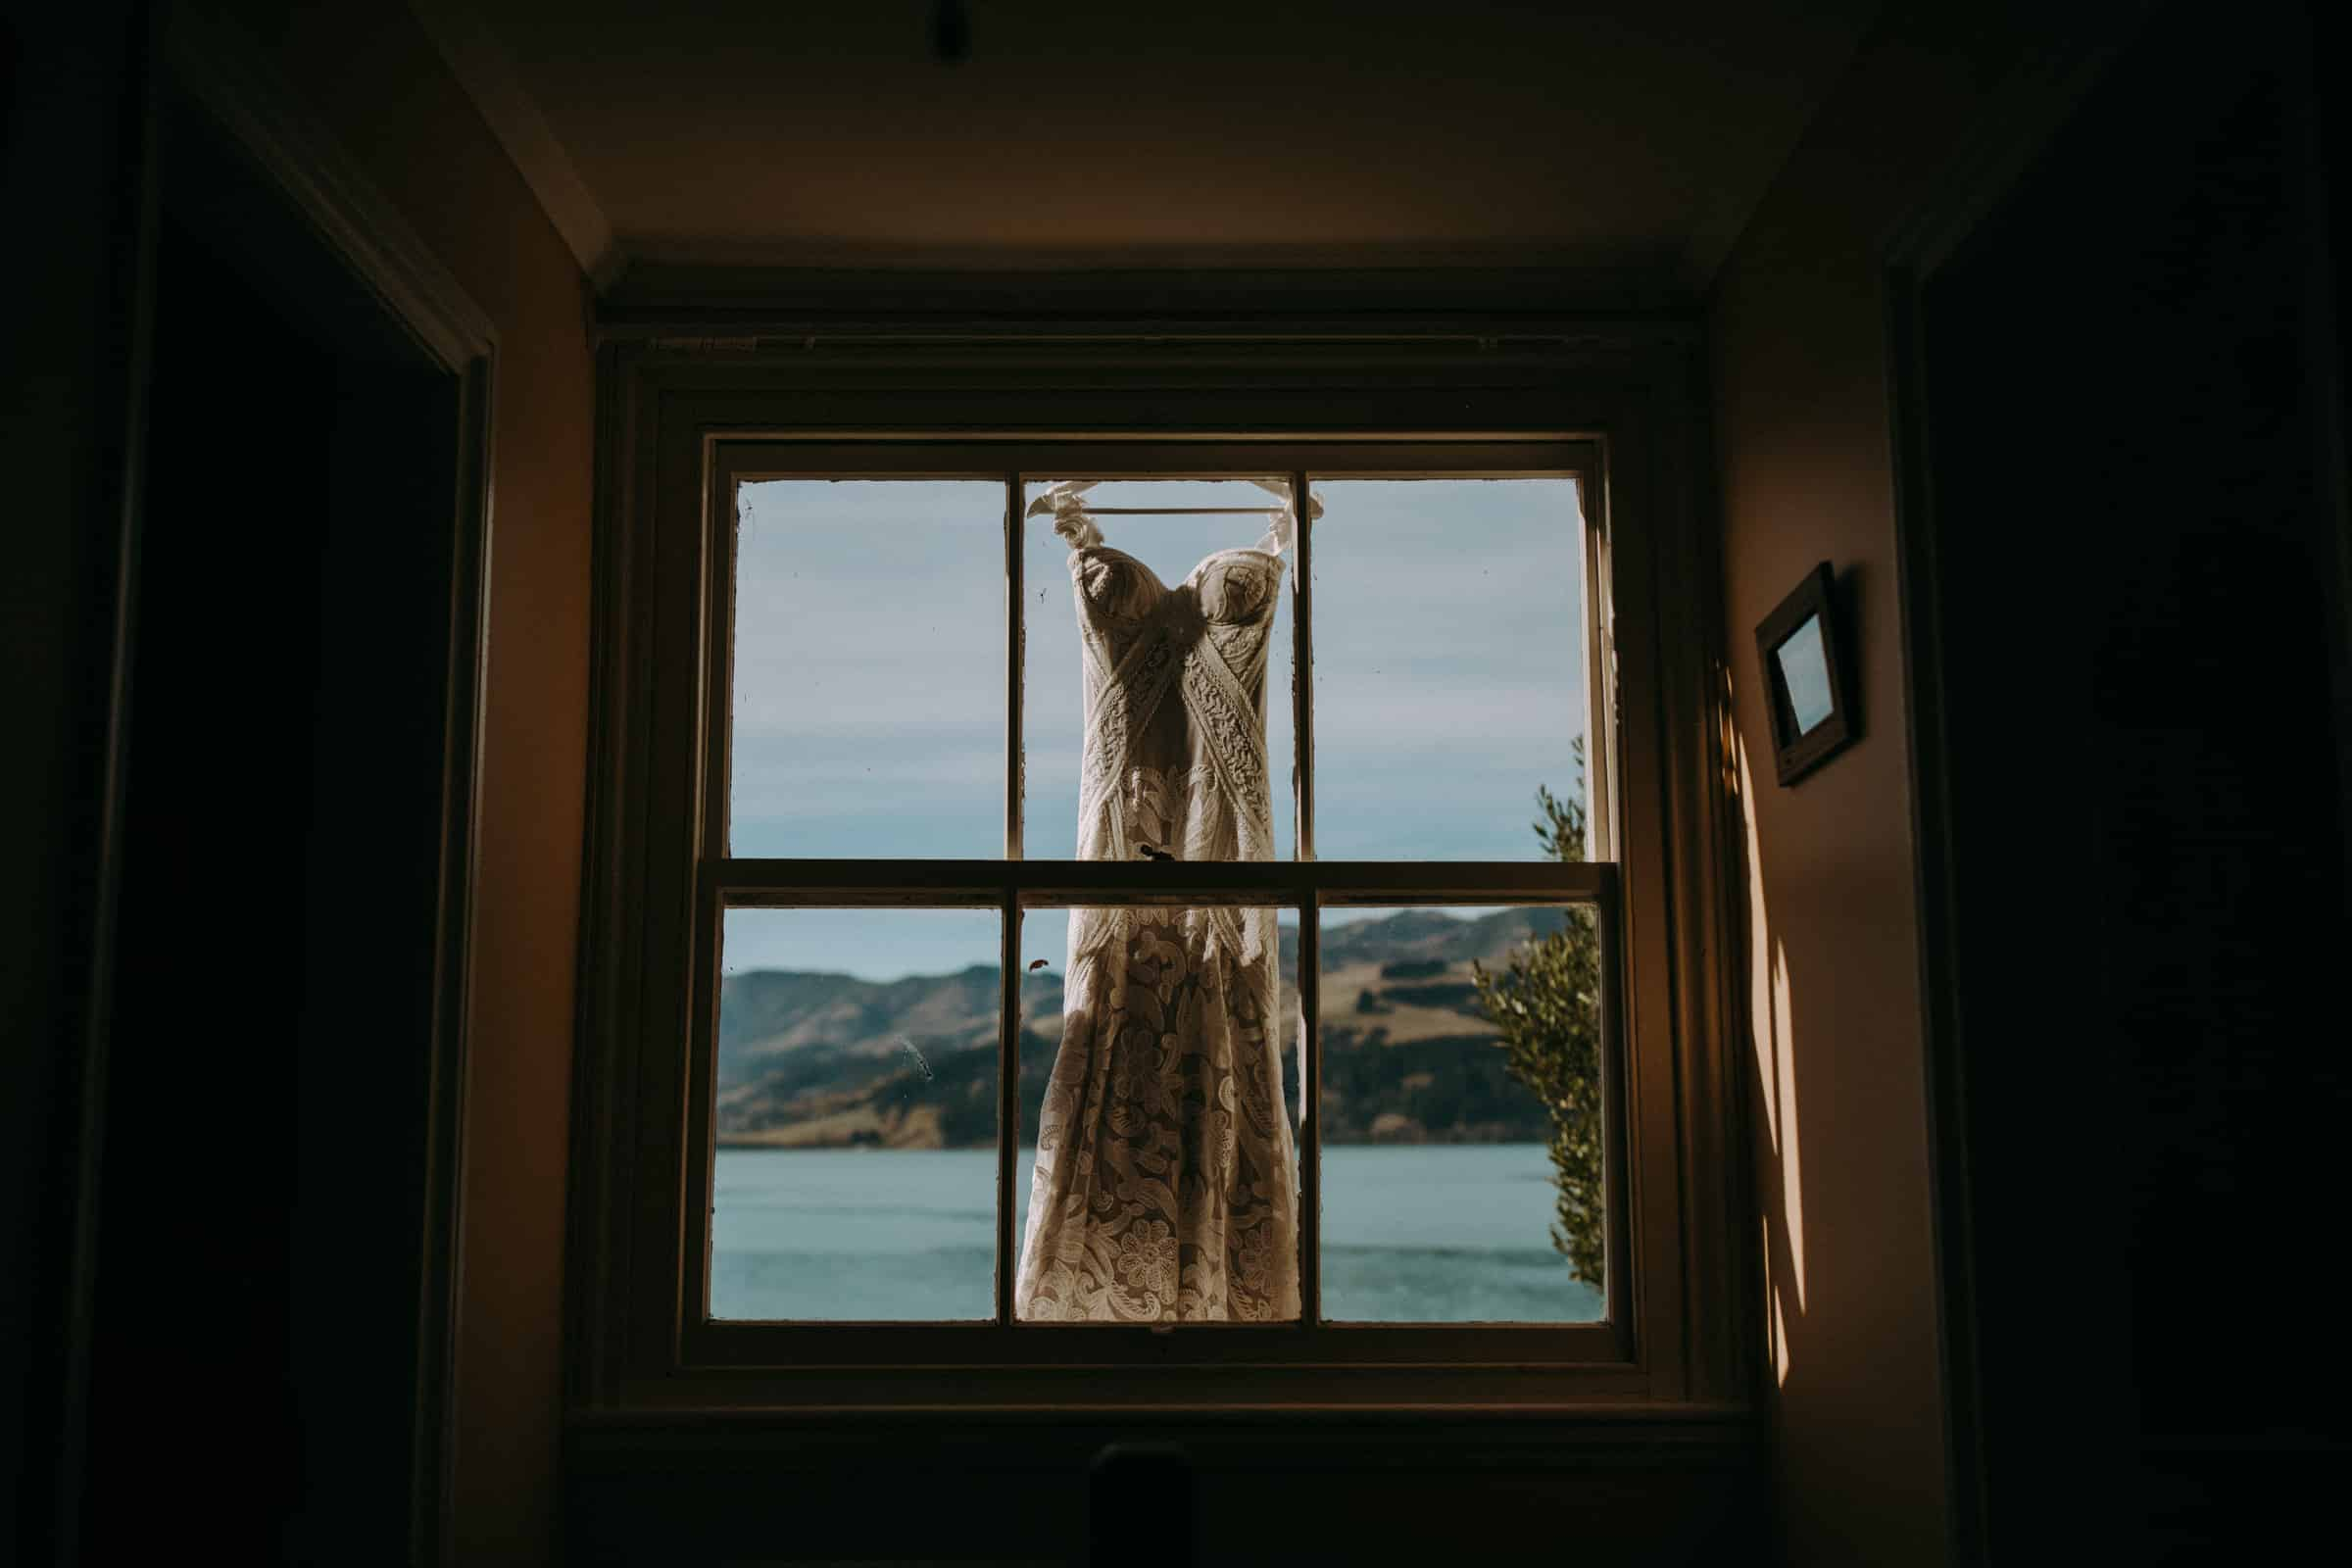 A wedding dress is hanging in front of a window.